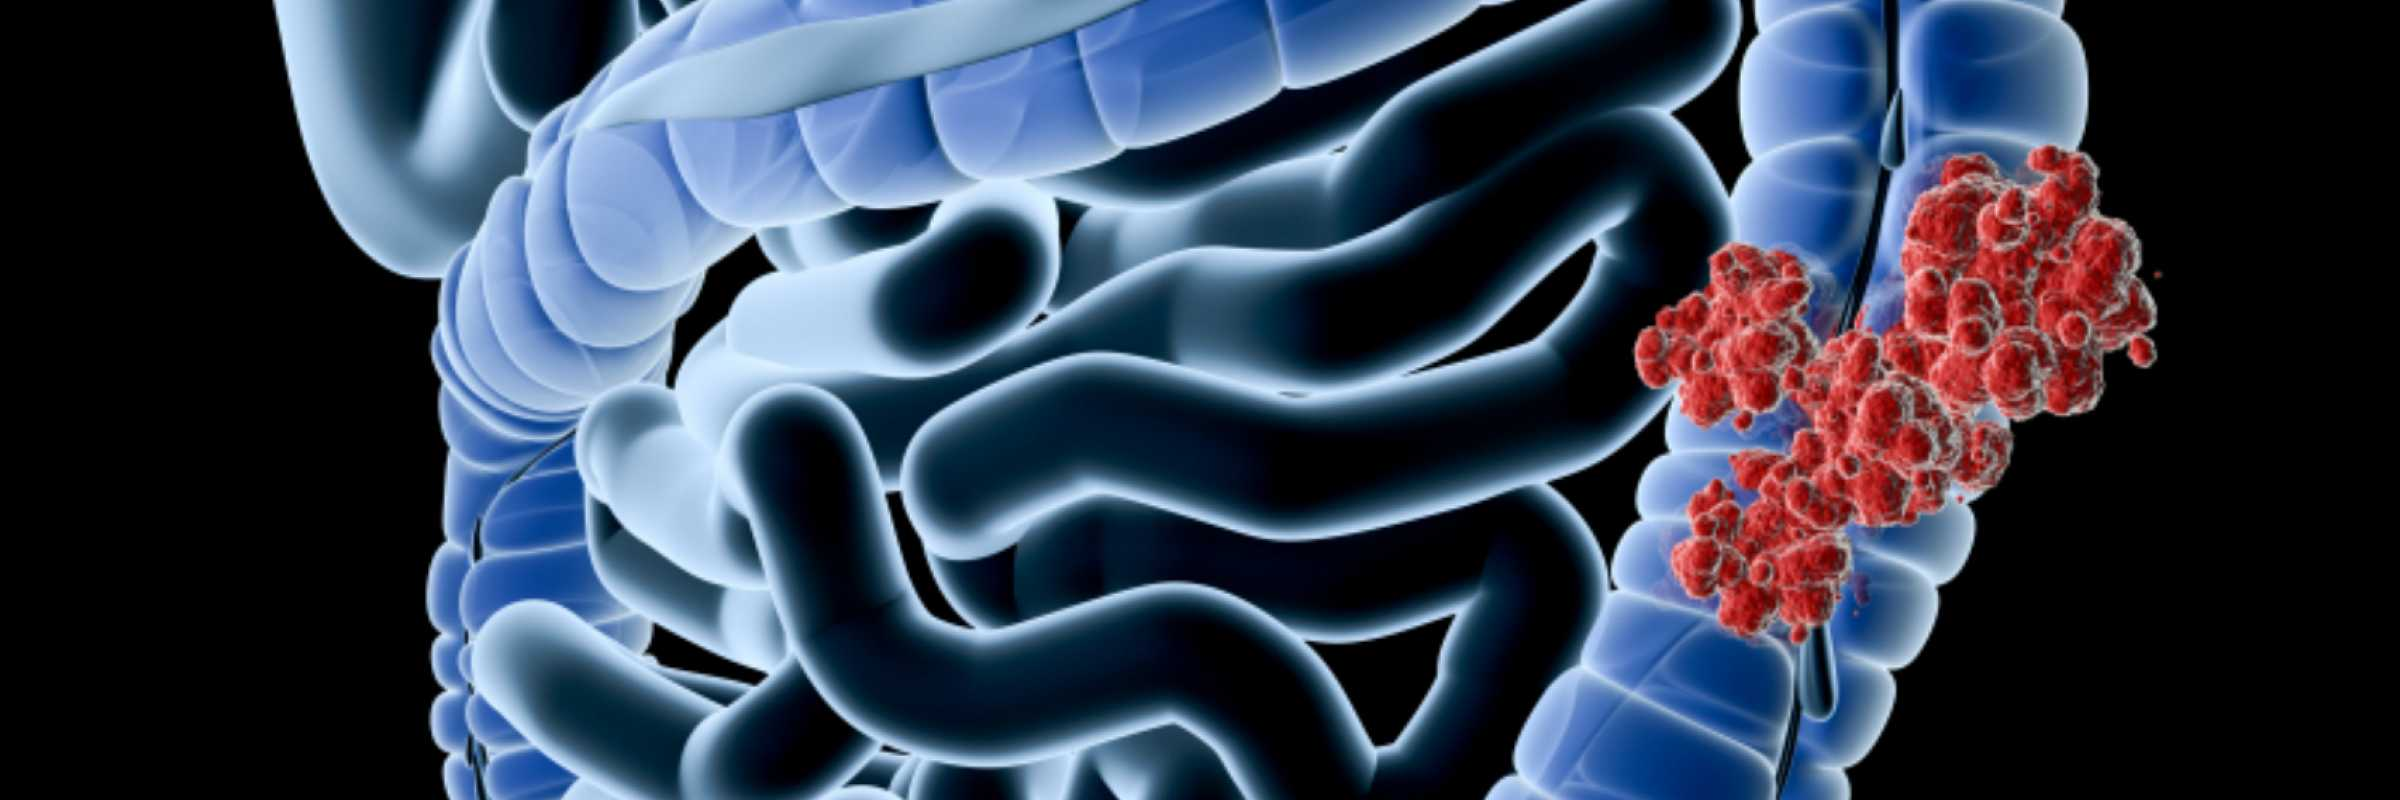 bacteria within the digestive system